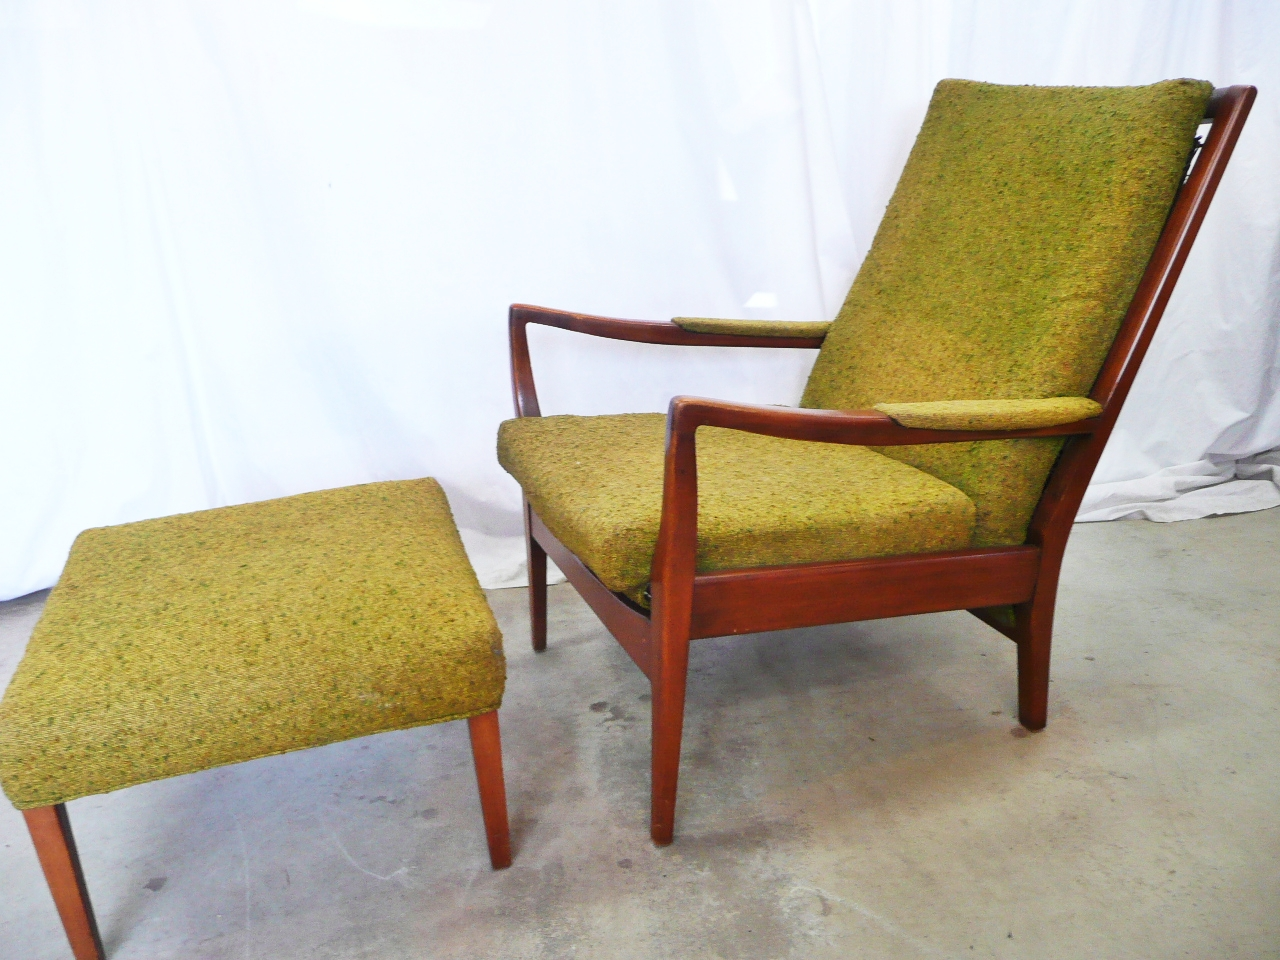 Vintage Designer Chairs Chair Cover Rentals Las Cruces Nm Modern Mid Century Danish Furniture Shop Used